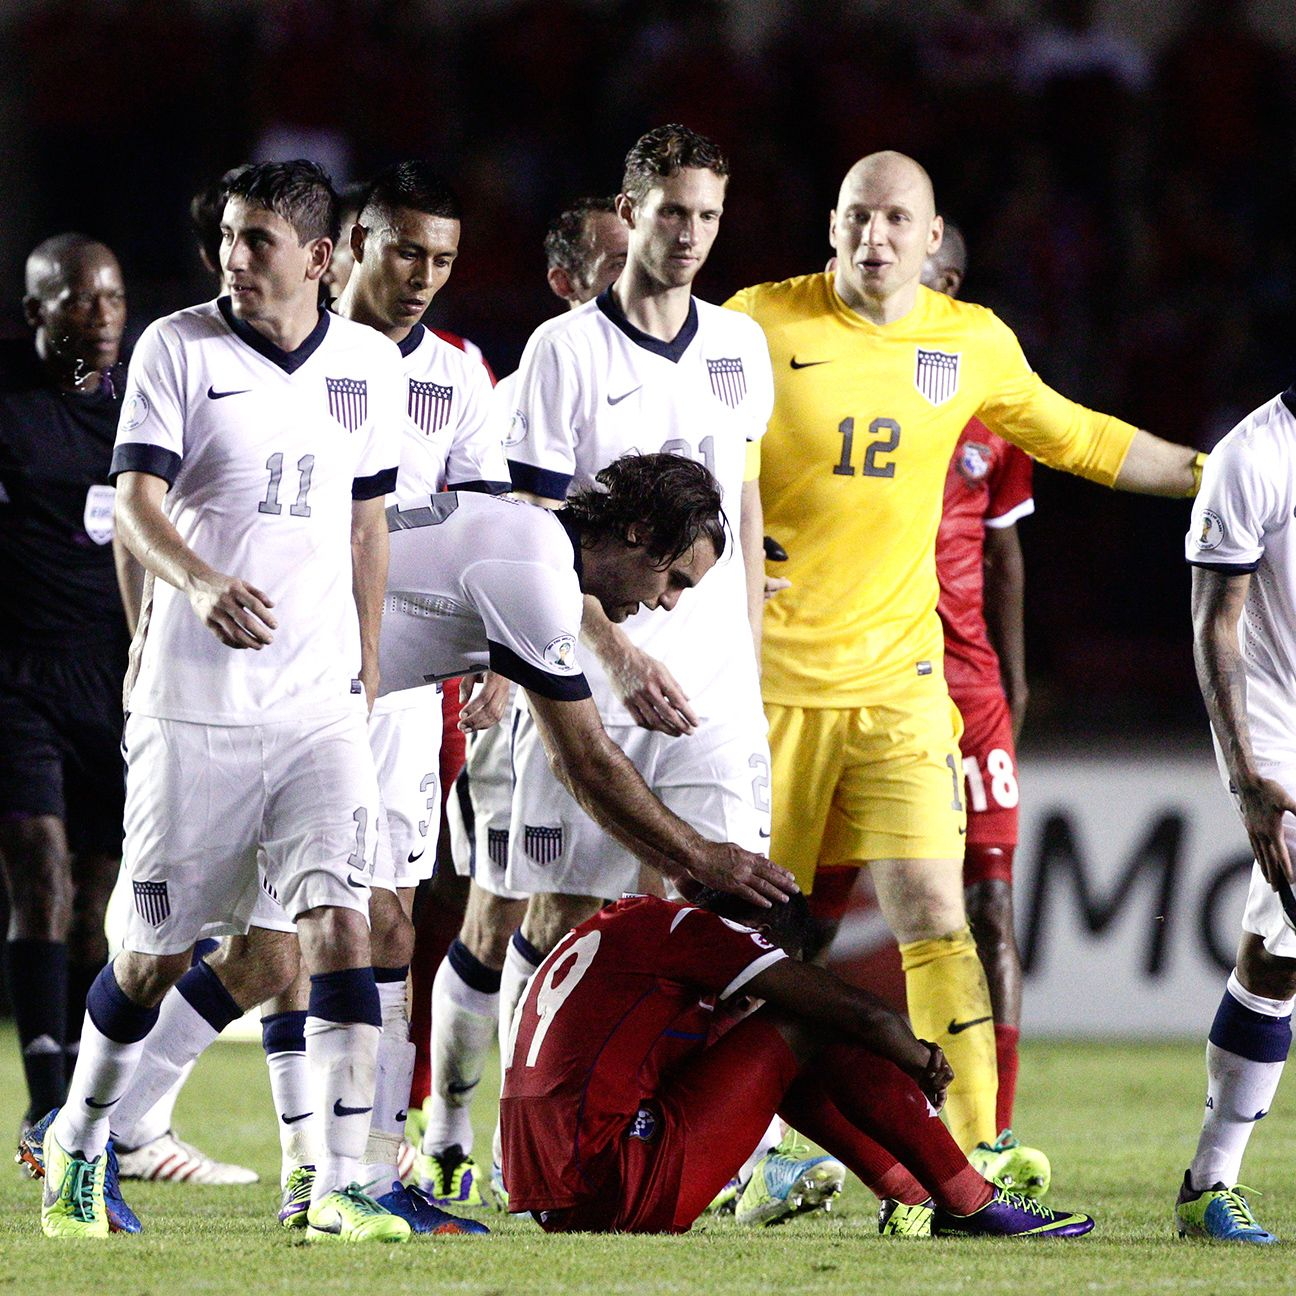 While thrilled with the victory, Zusi and his U.S. teammates did not hesitate to console the Panamanian players.